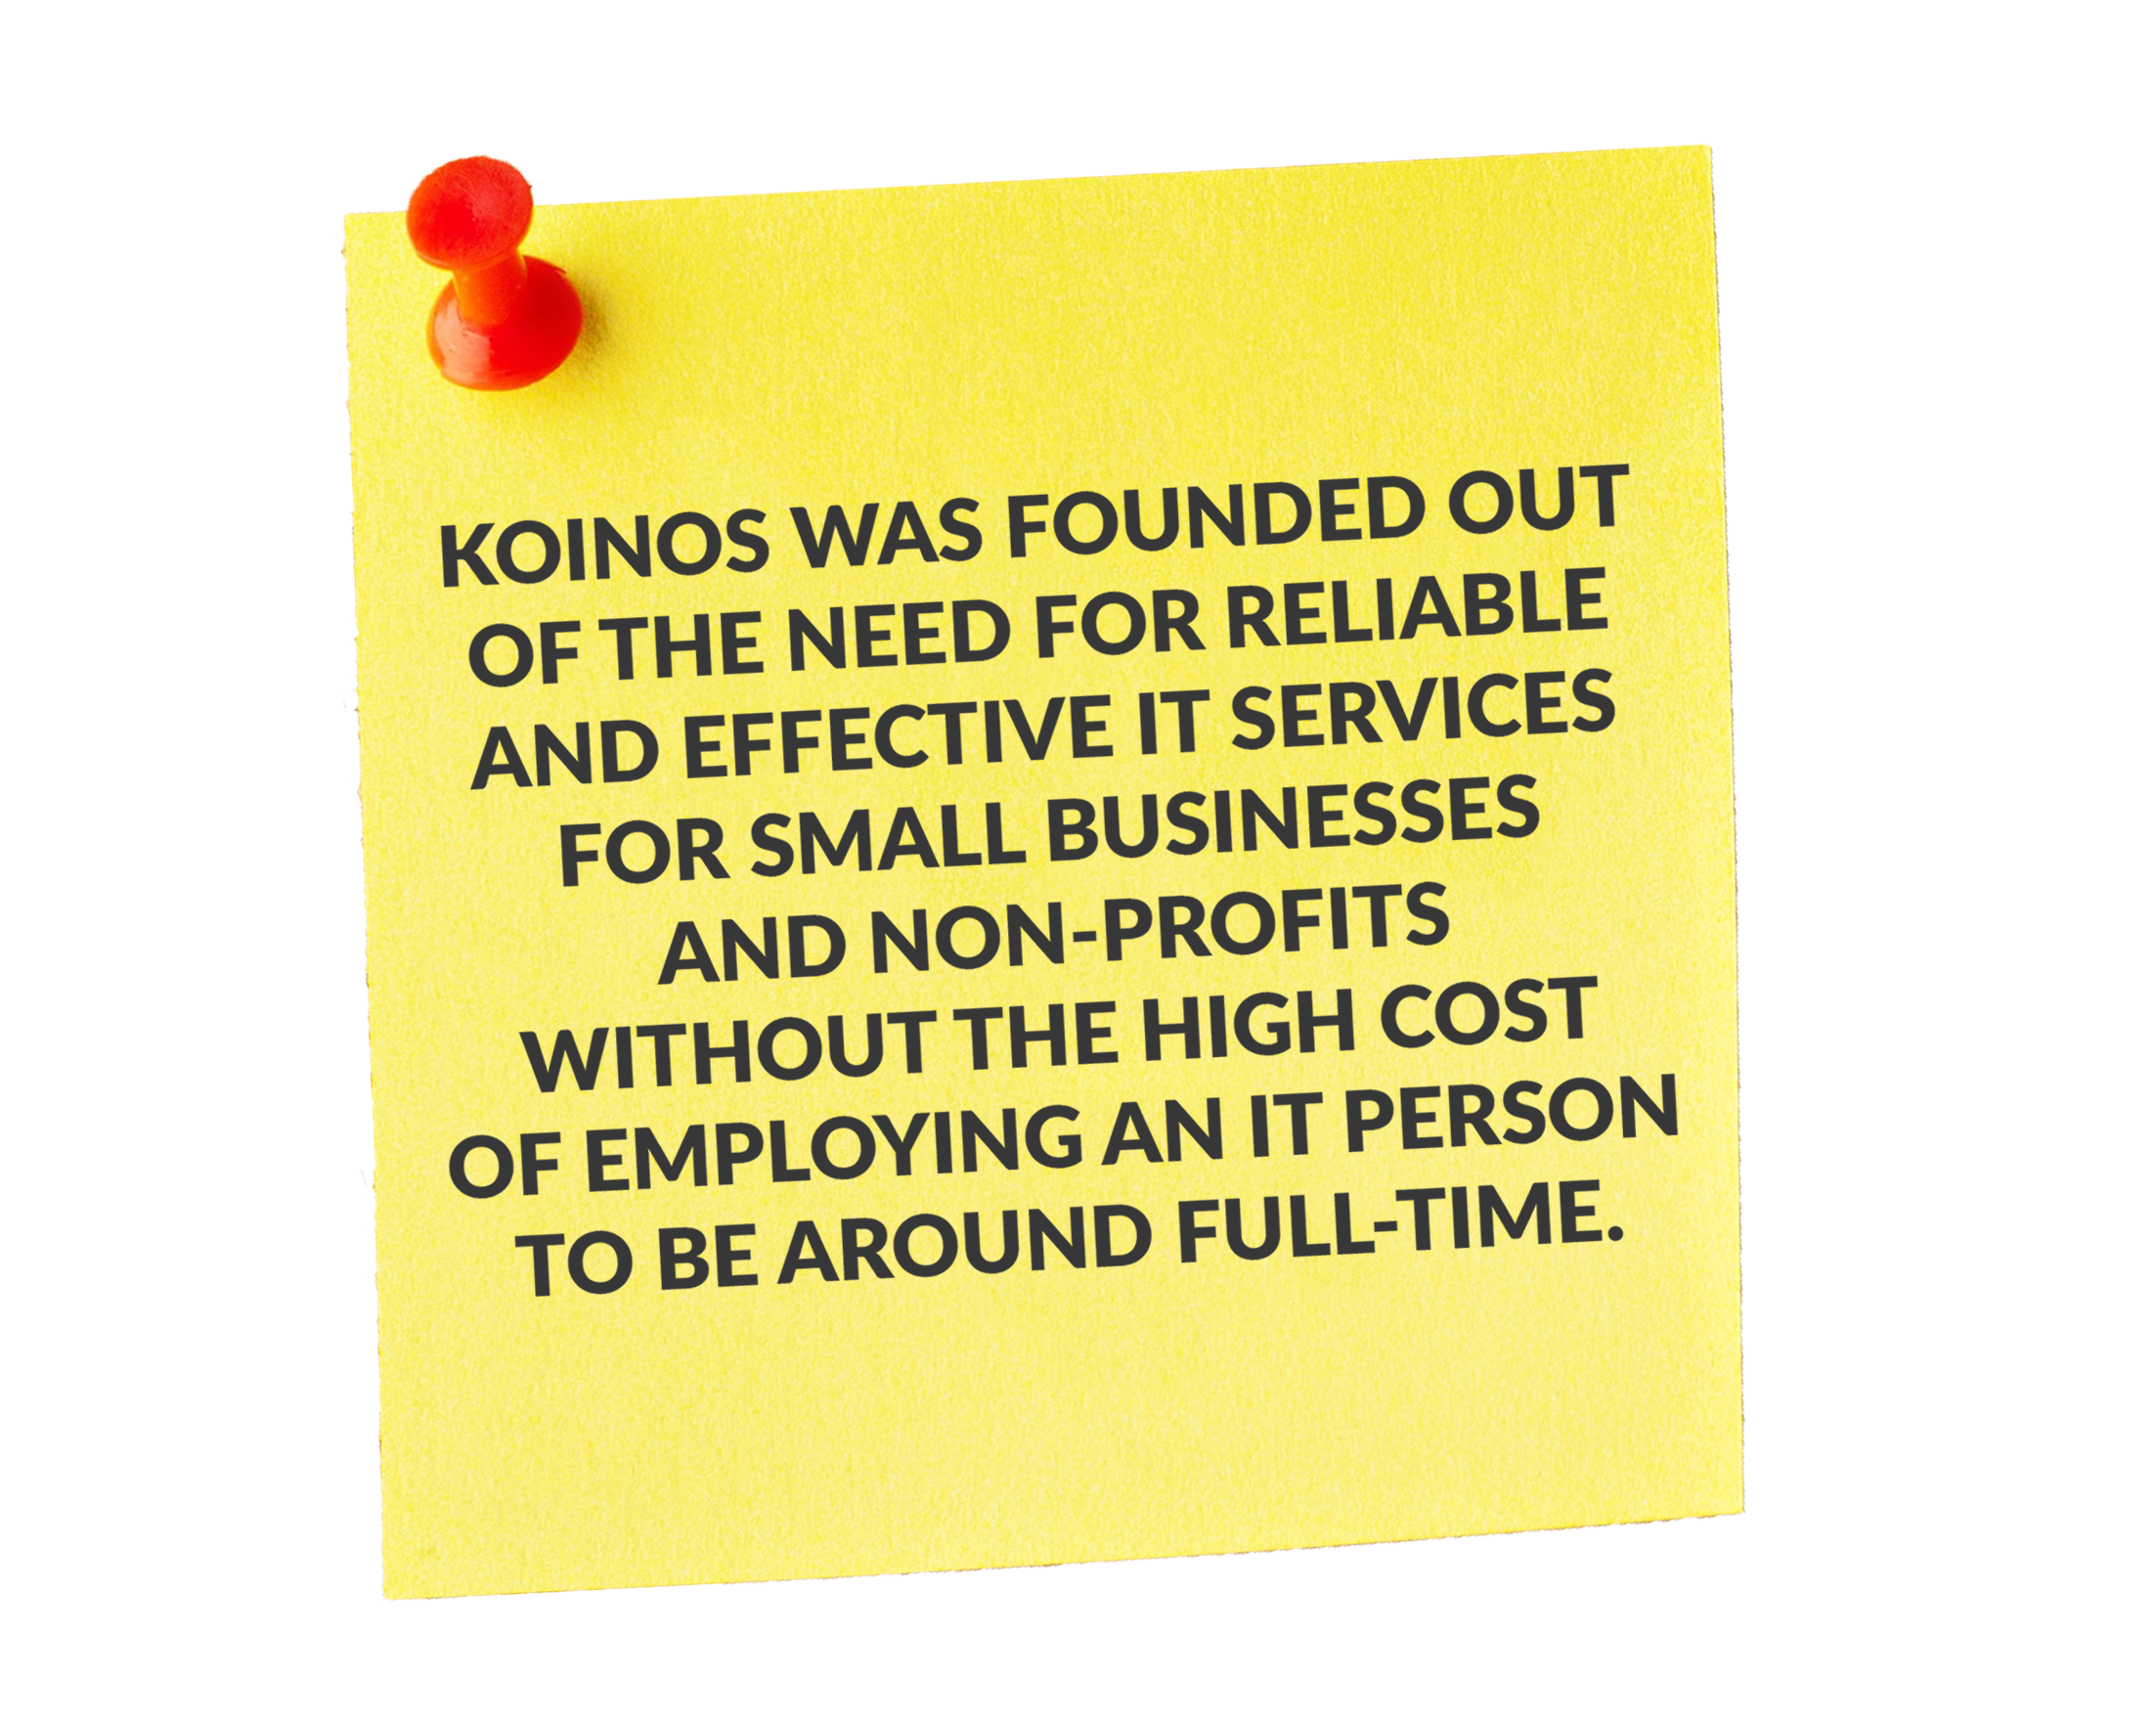 koinos was founded out of the need for reliable and effective it services for small businesses and non-profits without the high cost of employing an it person to be around full-time